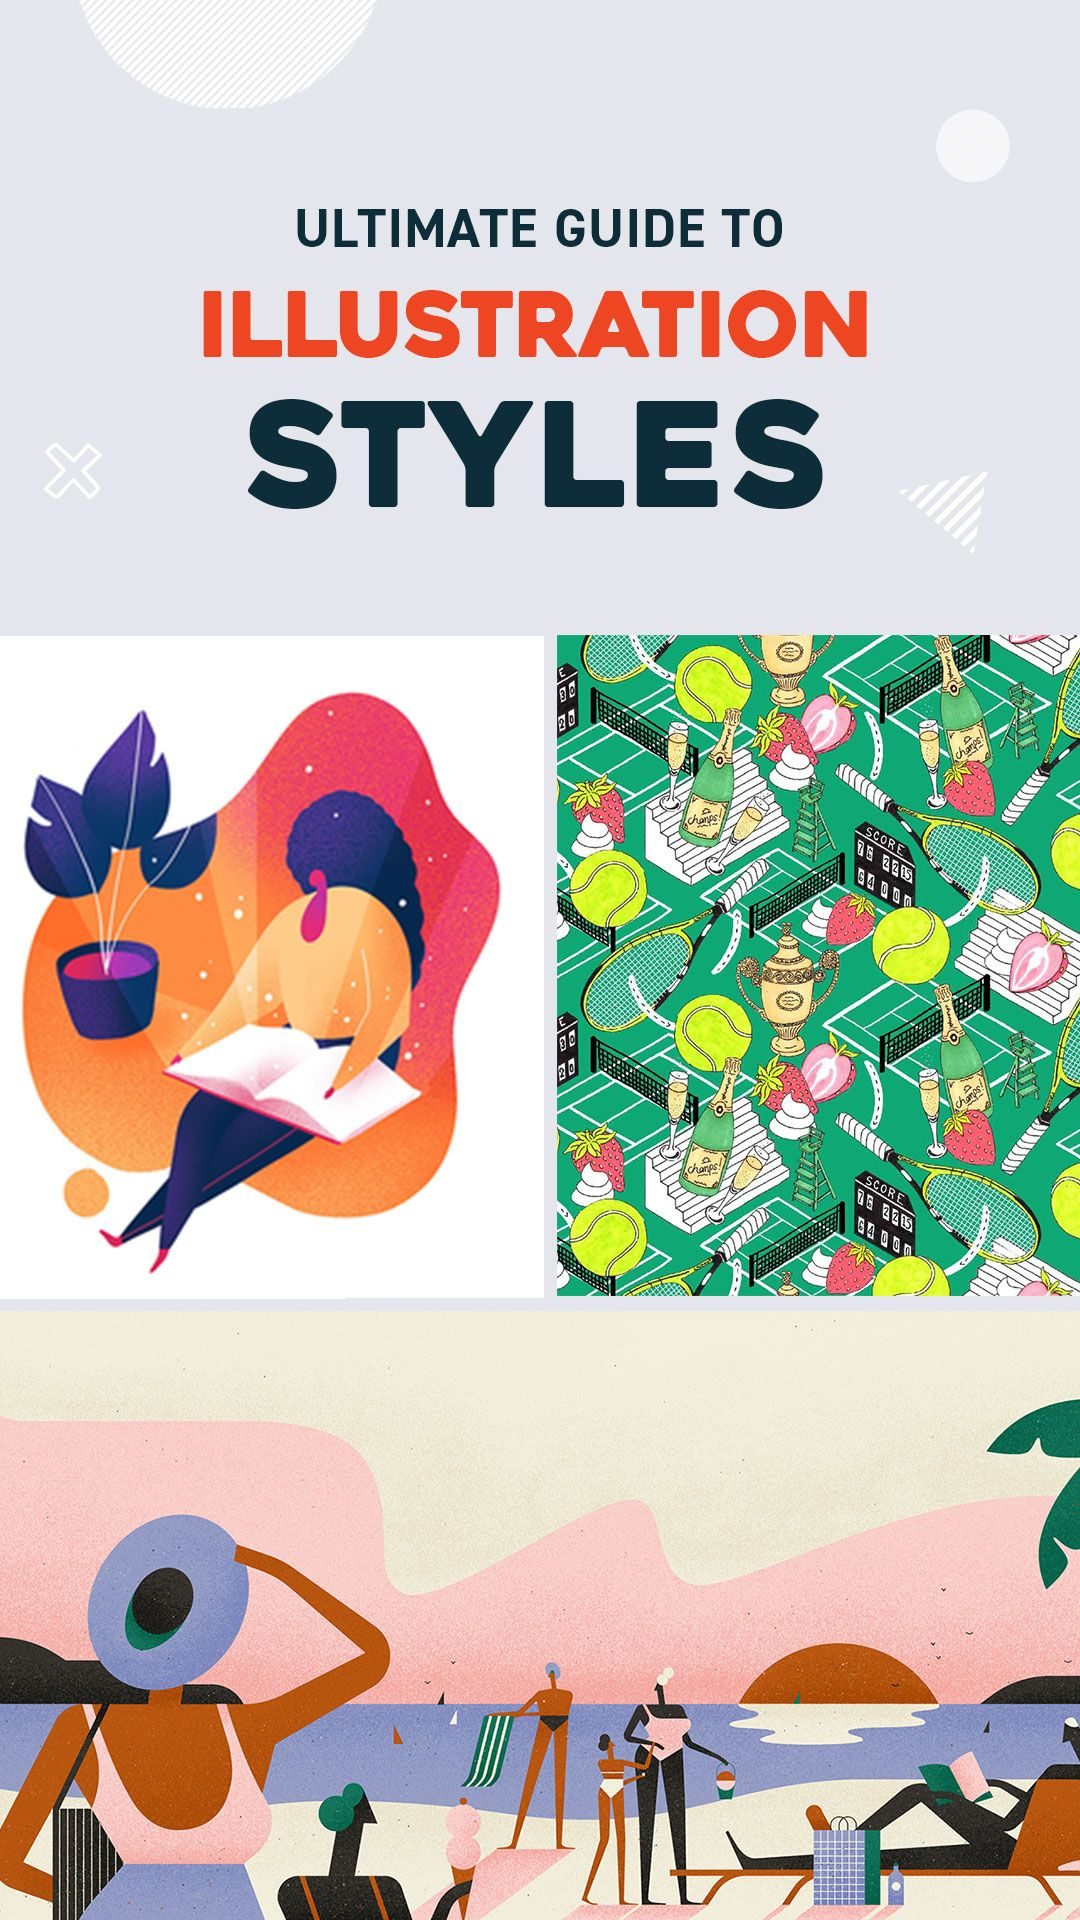 If you are an aspiring illustrator and looking to develop your own unique illustration style then we have a awesome post for you, packed full of contemporary artists whose illustration style we love. each style is unique and easily distinguishable. We hope you find them inspiring as much as we do!